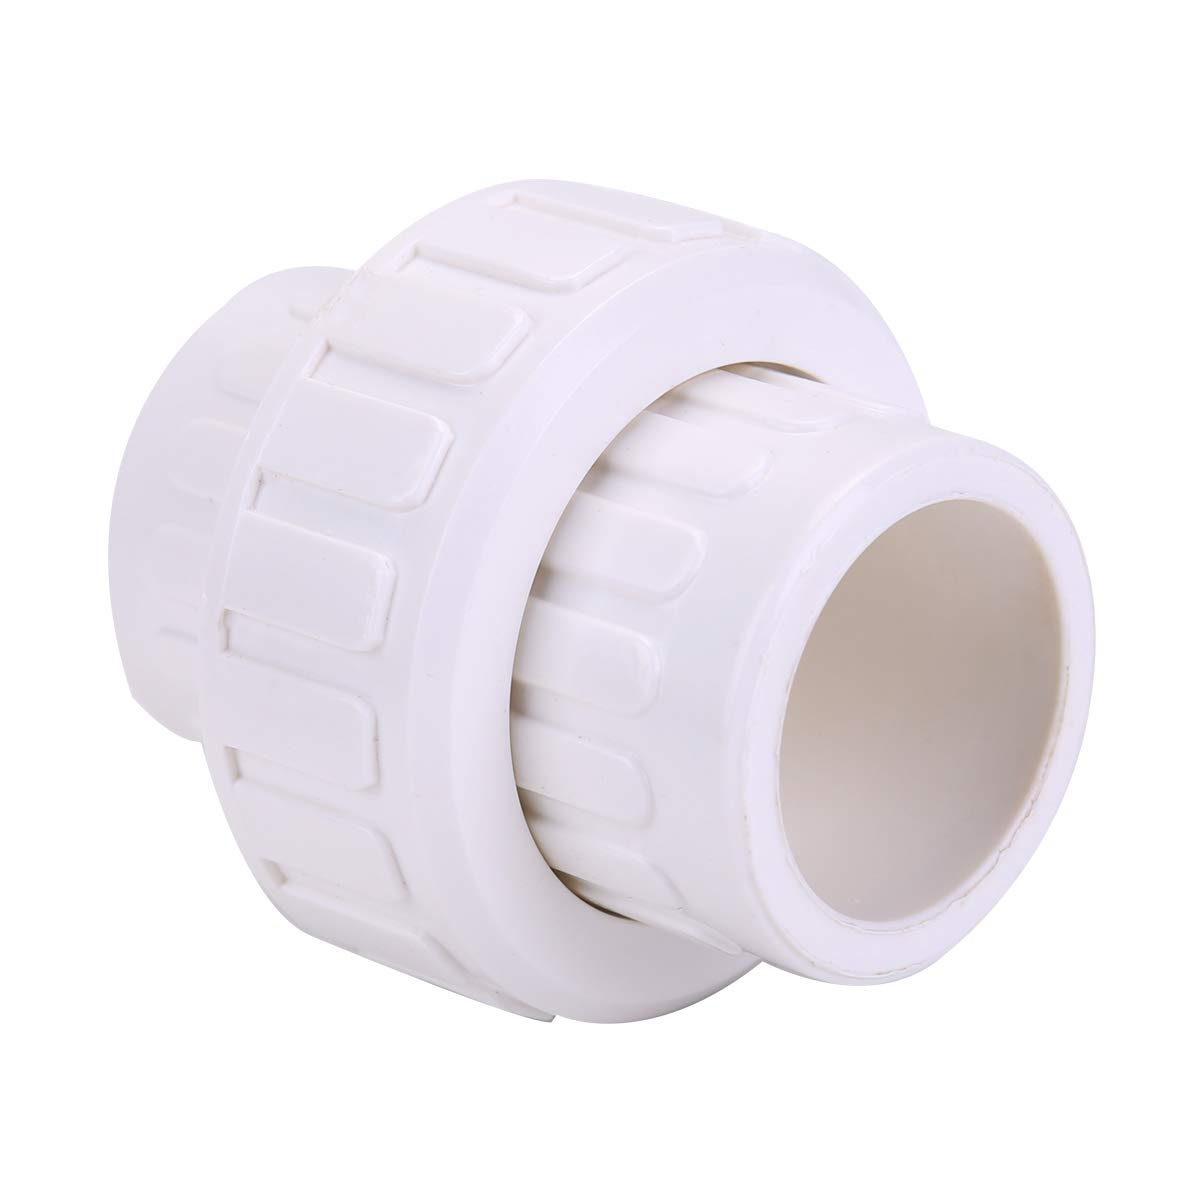 1/'/' Socket SHYOKO 1/'/' PVC Pipe Fitting PVC Union with EPDM O-Ring with EPDM O-Ring Schedule 80 Available 3//4,1.5,2